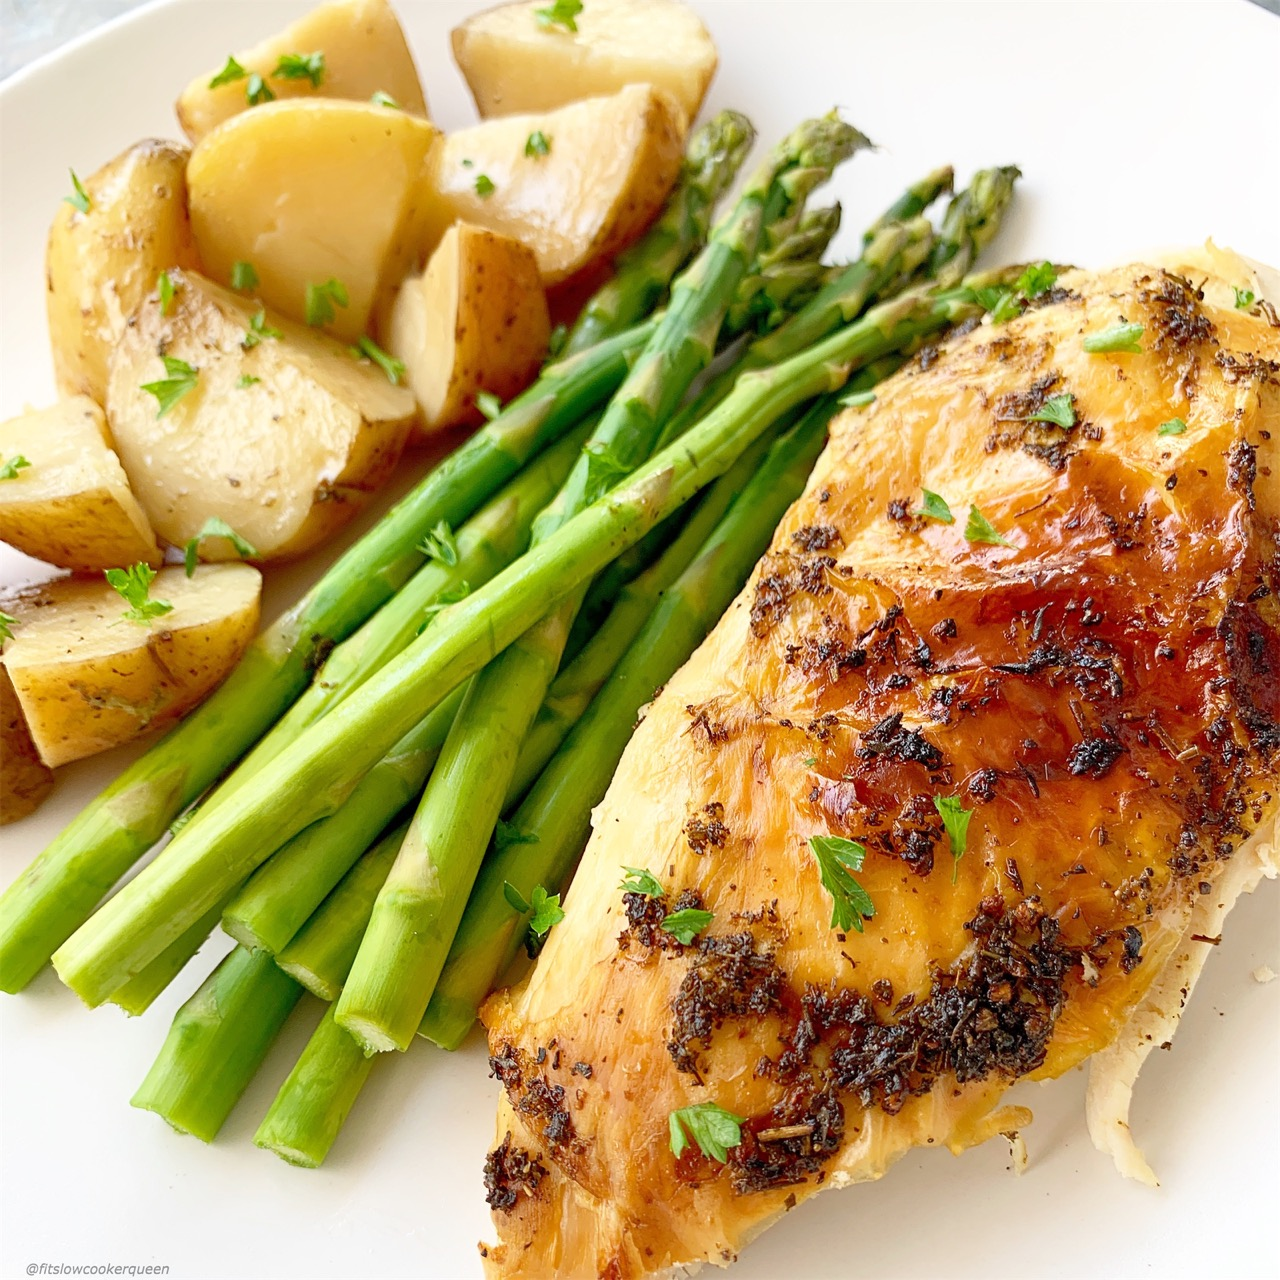 Plate of whole chicken dinner with potatoes, asparagus and chicken